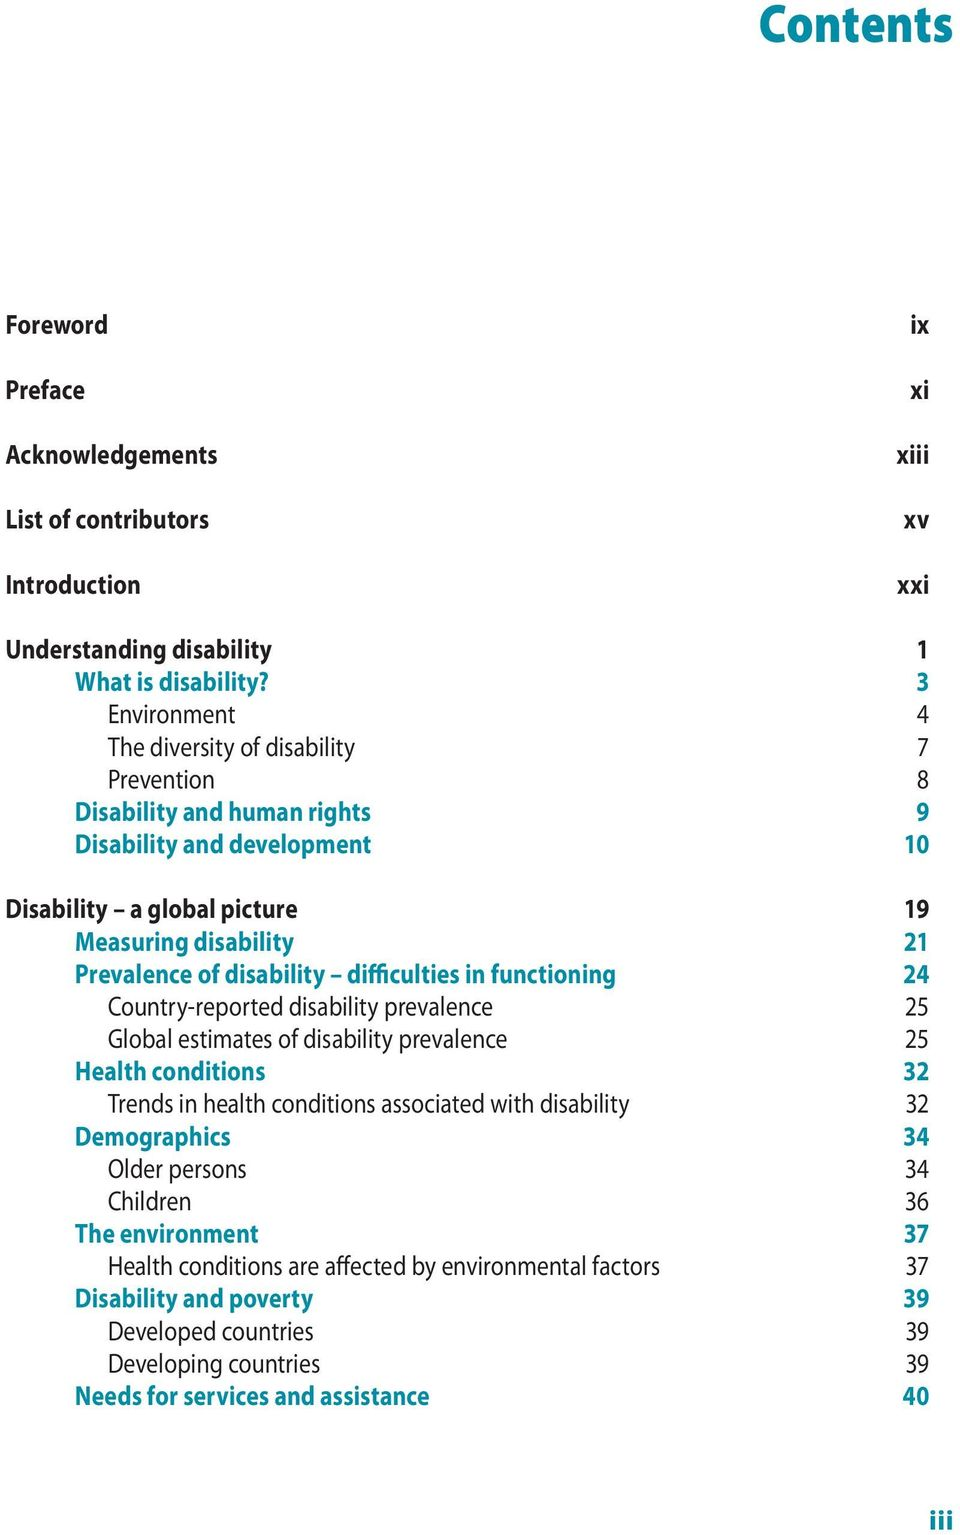 disability difficulties in functioning 24 Country-reported disability prevalence 25 Global estimates of disability prevalence 25 Health conditions 32 Trends in health conditions associated with